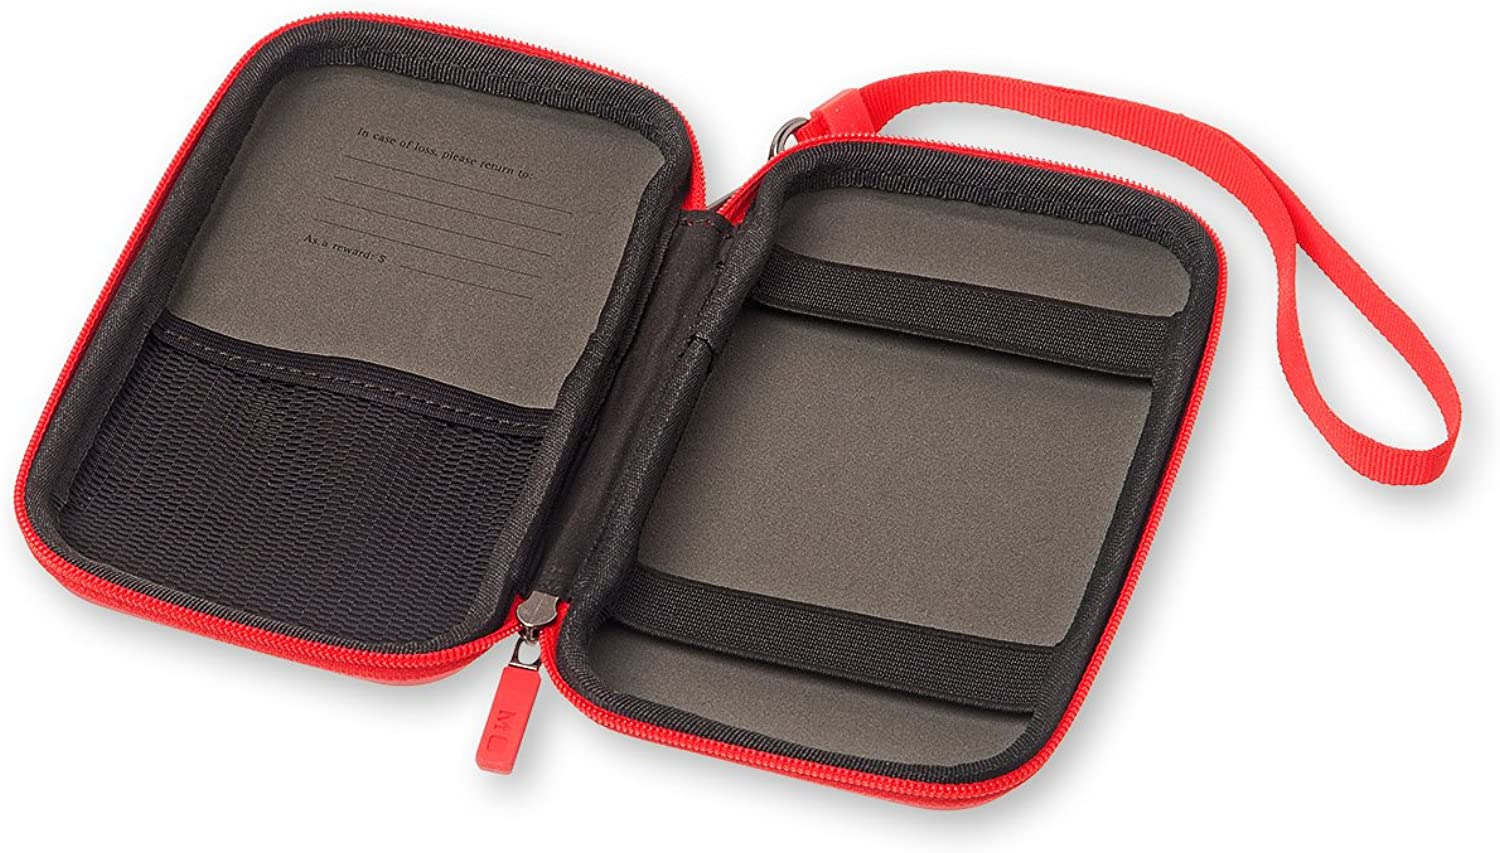 Moleskine Journey Scarlet Red Small Pouch Hard